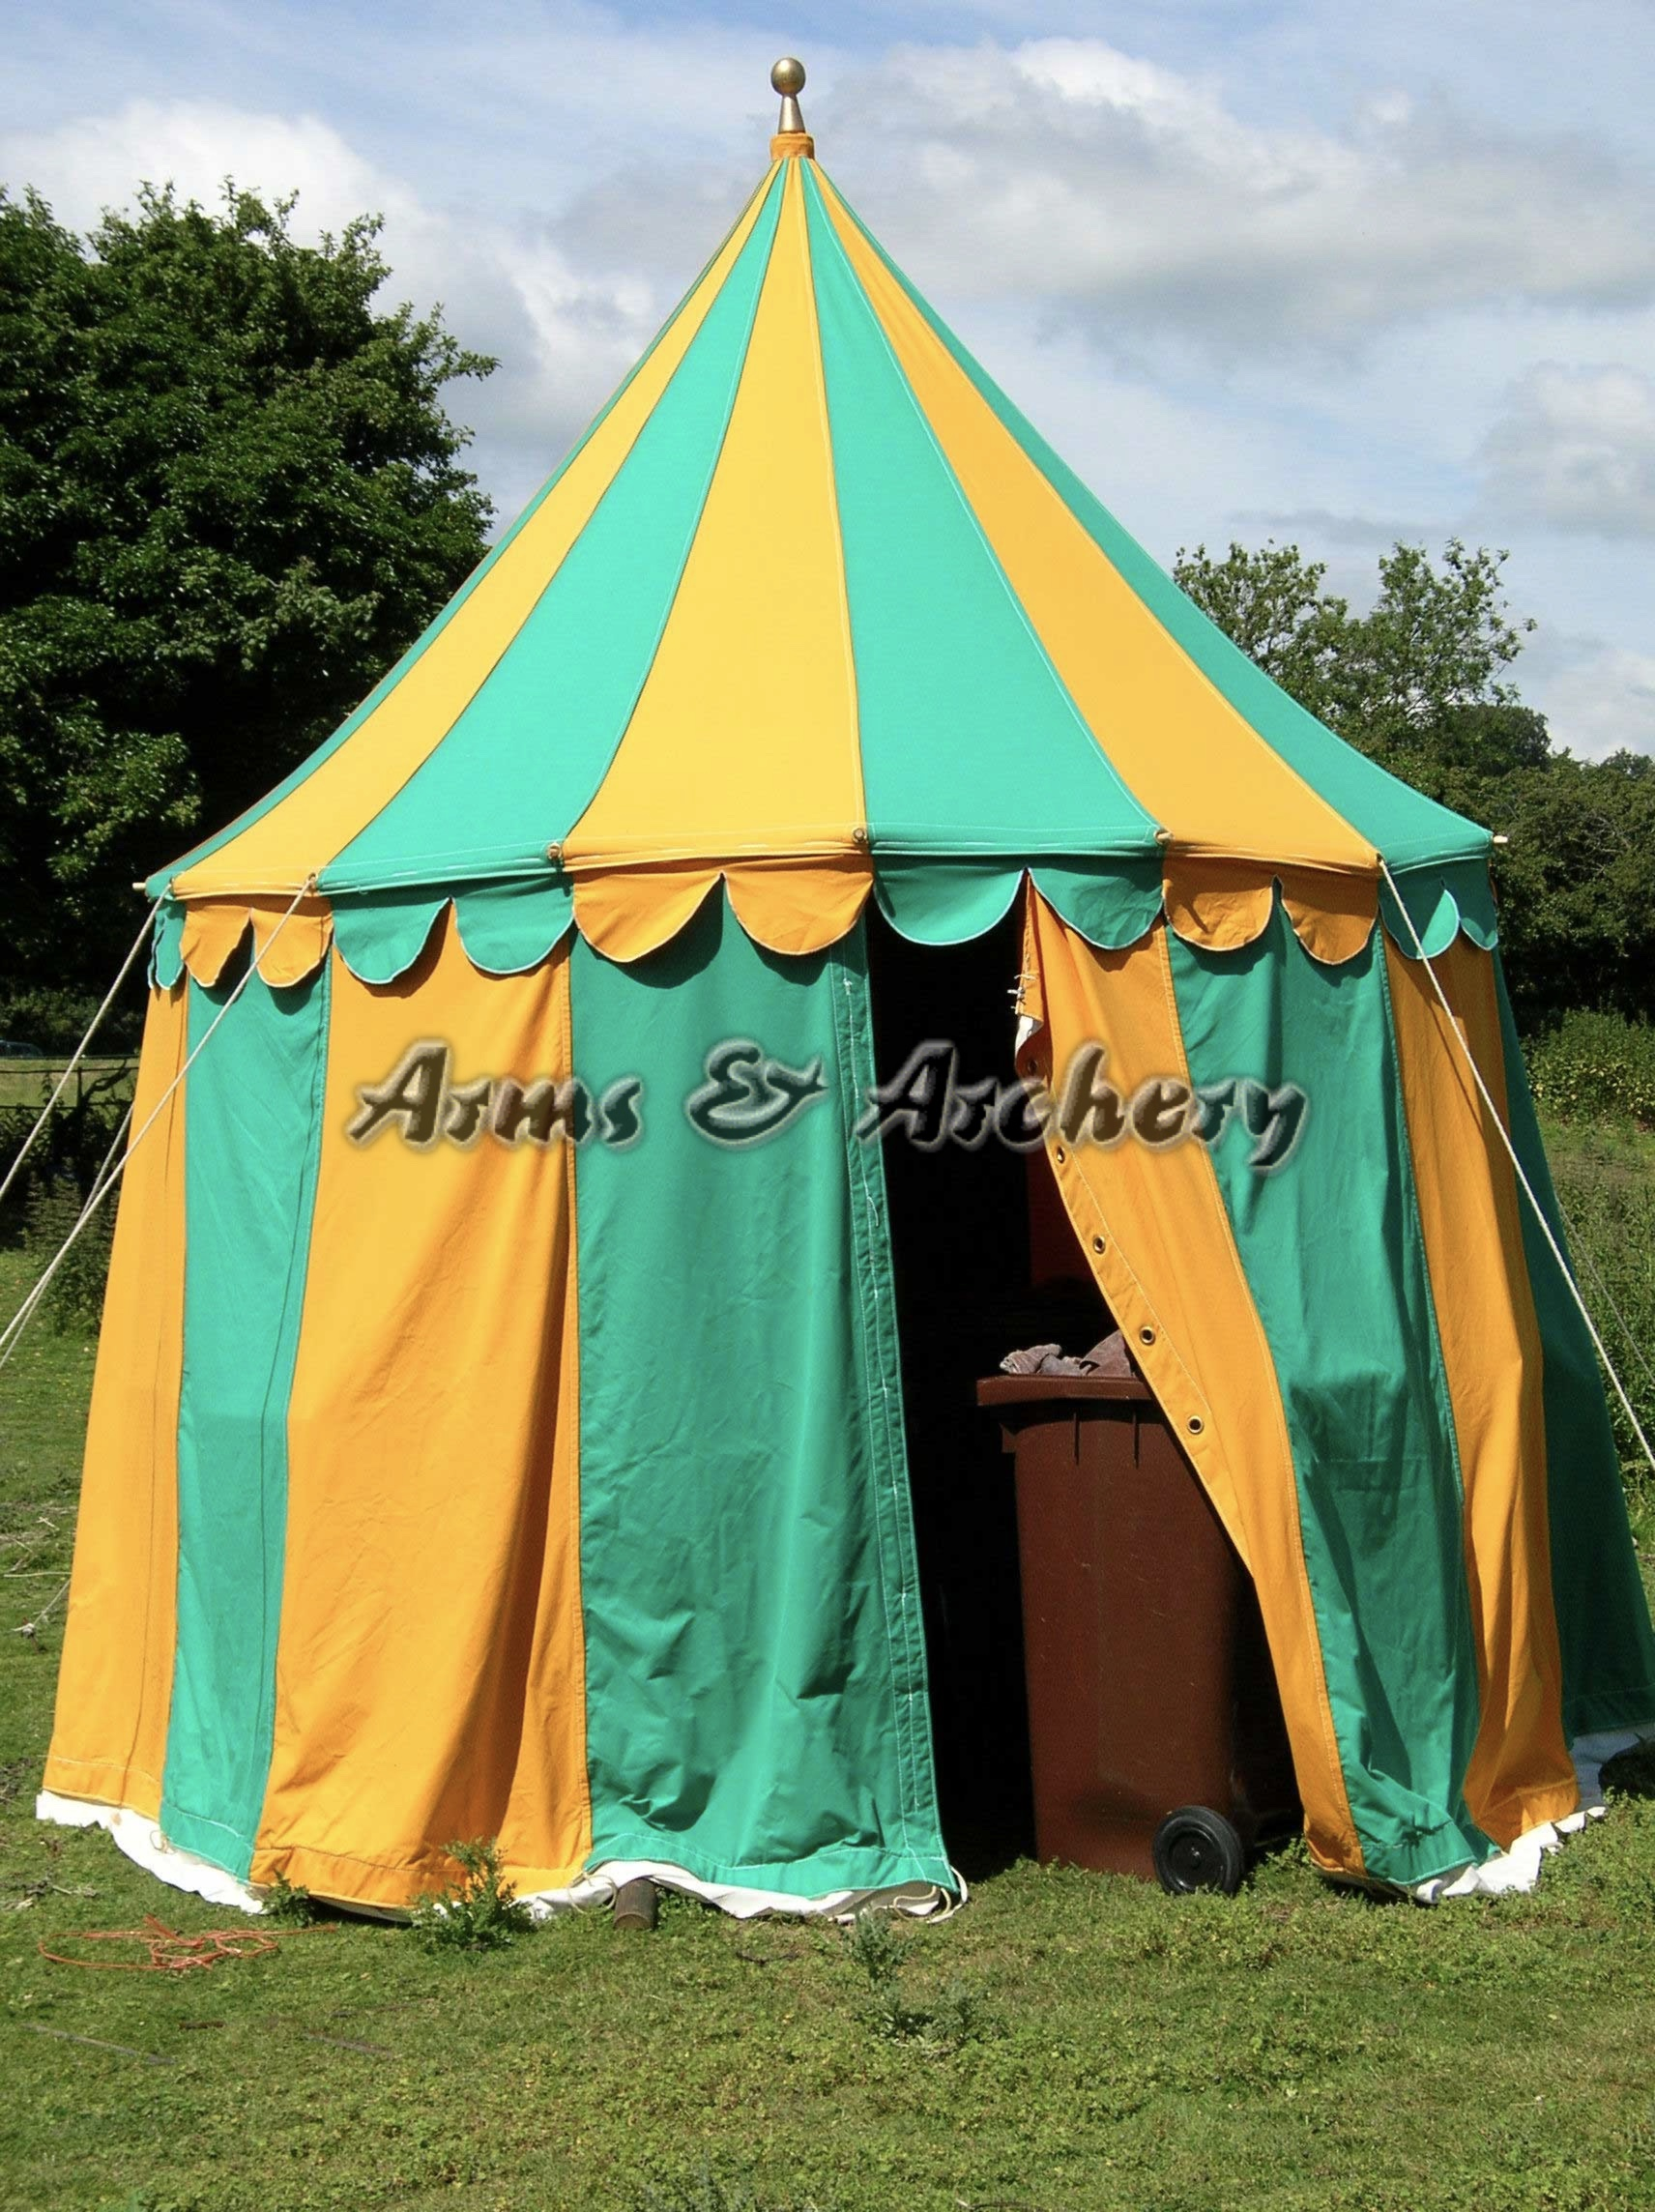 15ft diameter panel tent & Arms and Archery - Medieval Armour Suits / Medieval Weaponry ...